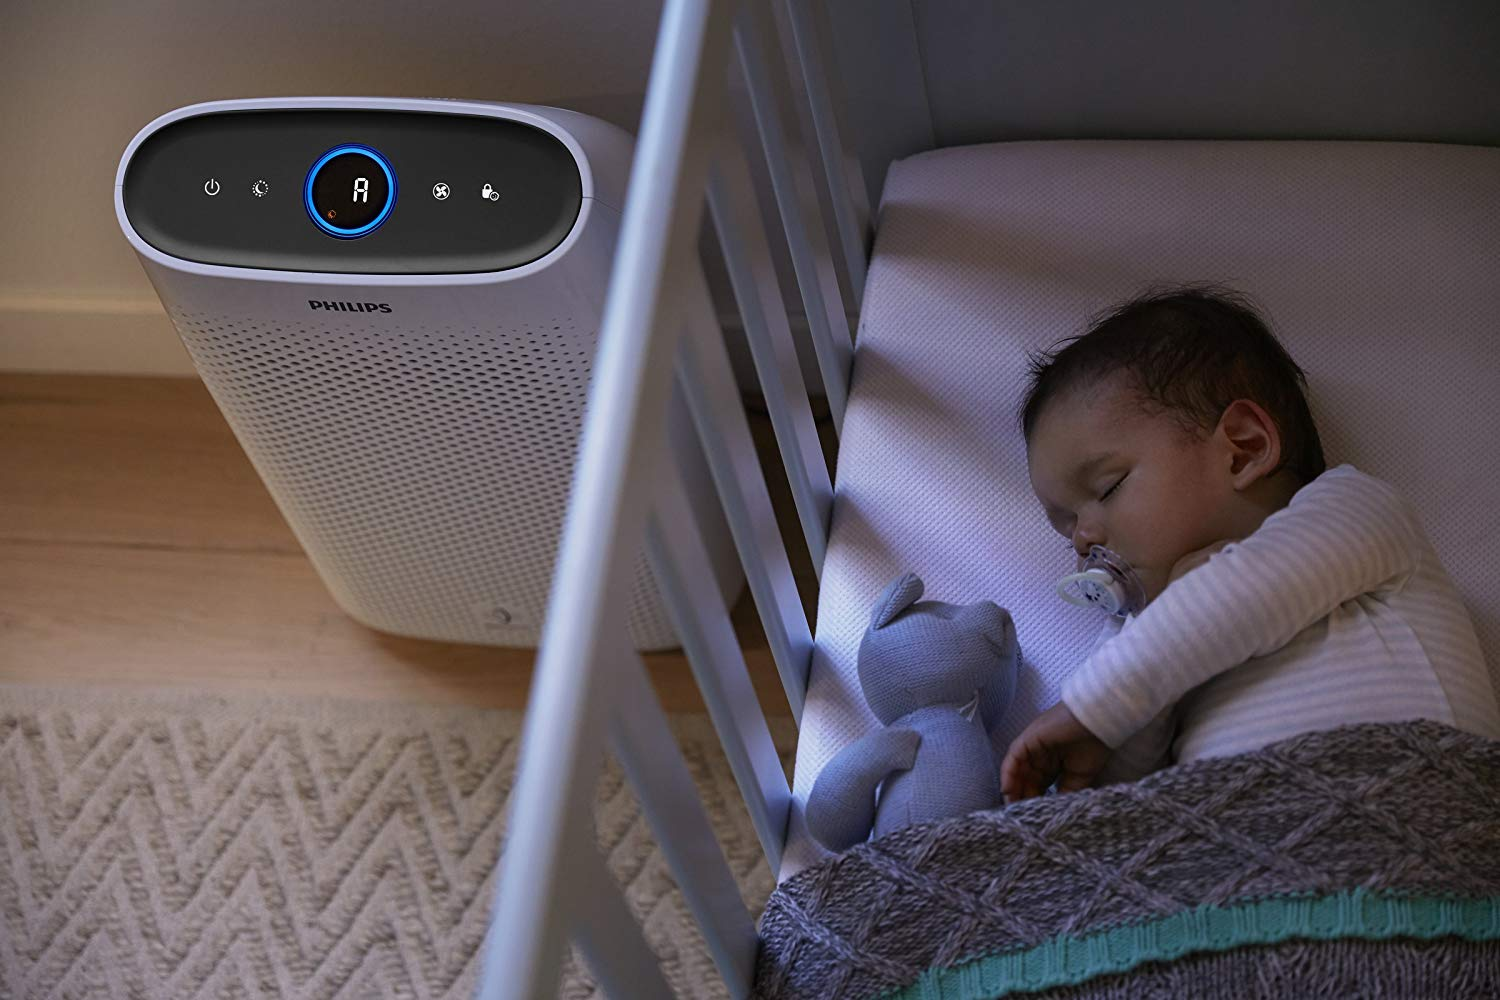 Philips Air Purifier Series 1000 with VitaShield IPS Technology and Night Sensing Mode, White, AC1215/70